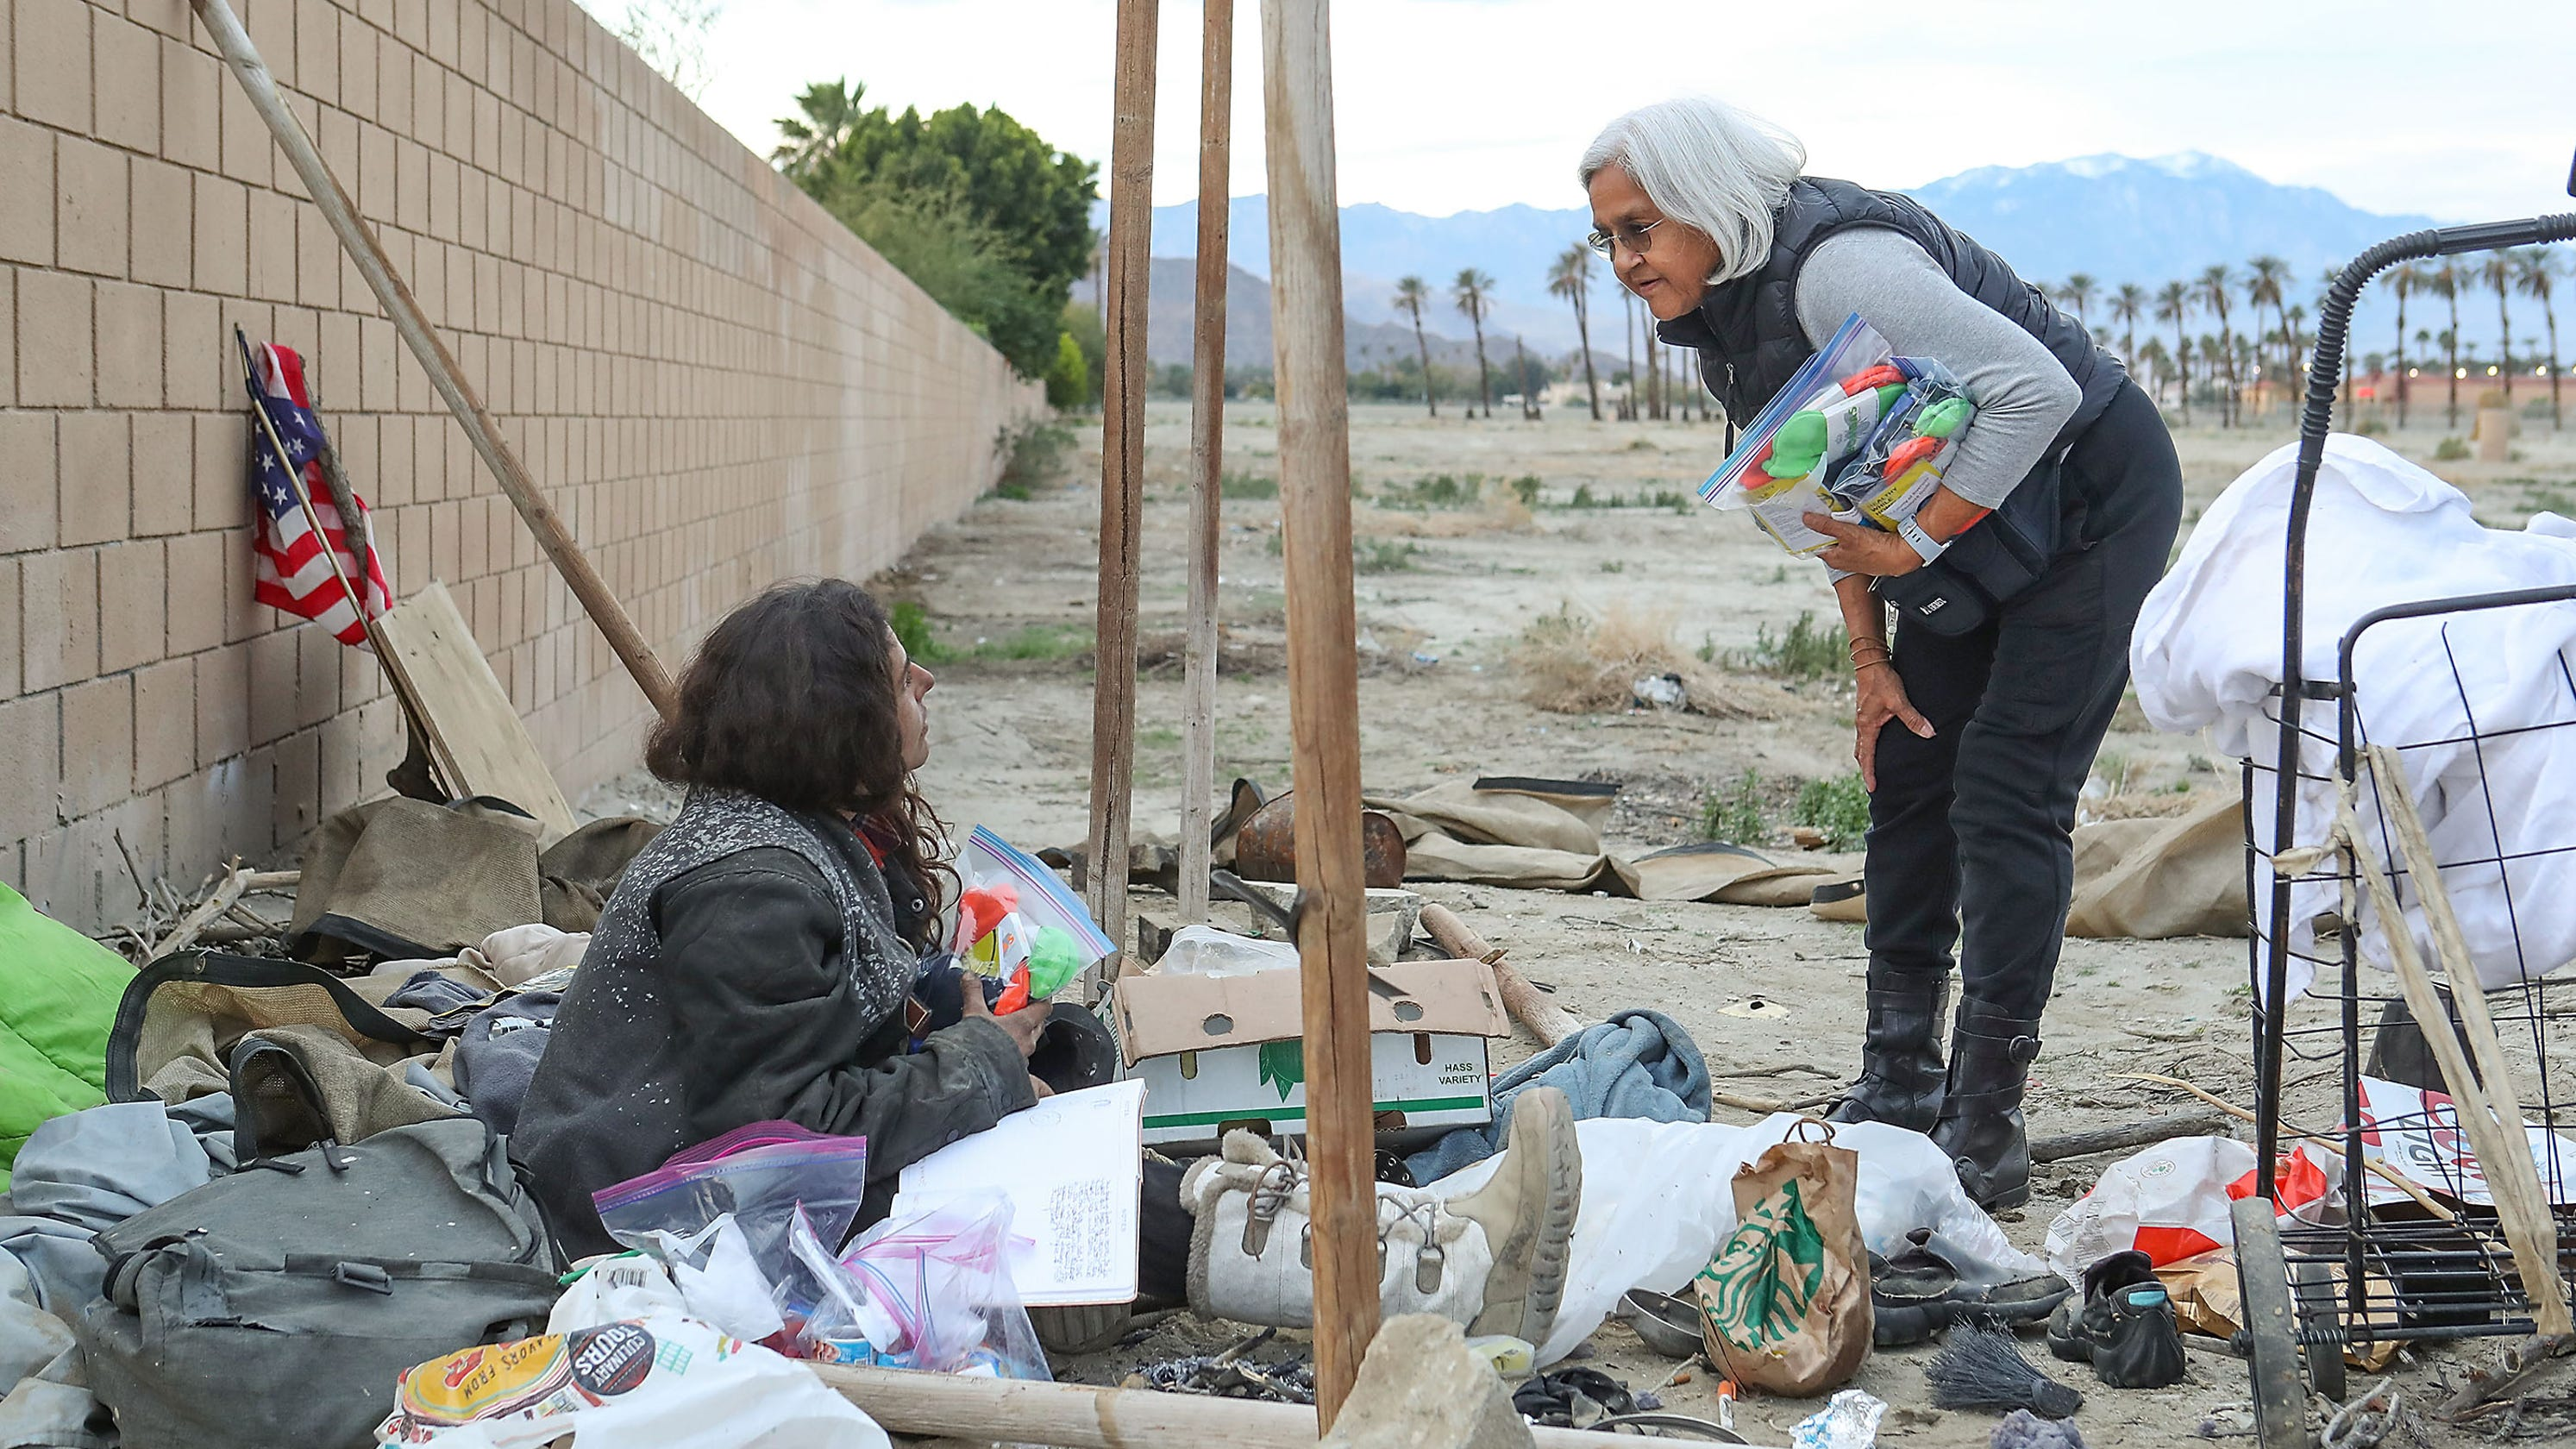 Palm Springs Area Volunteers Participate In Homeless Point In Time Count